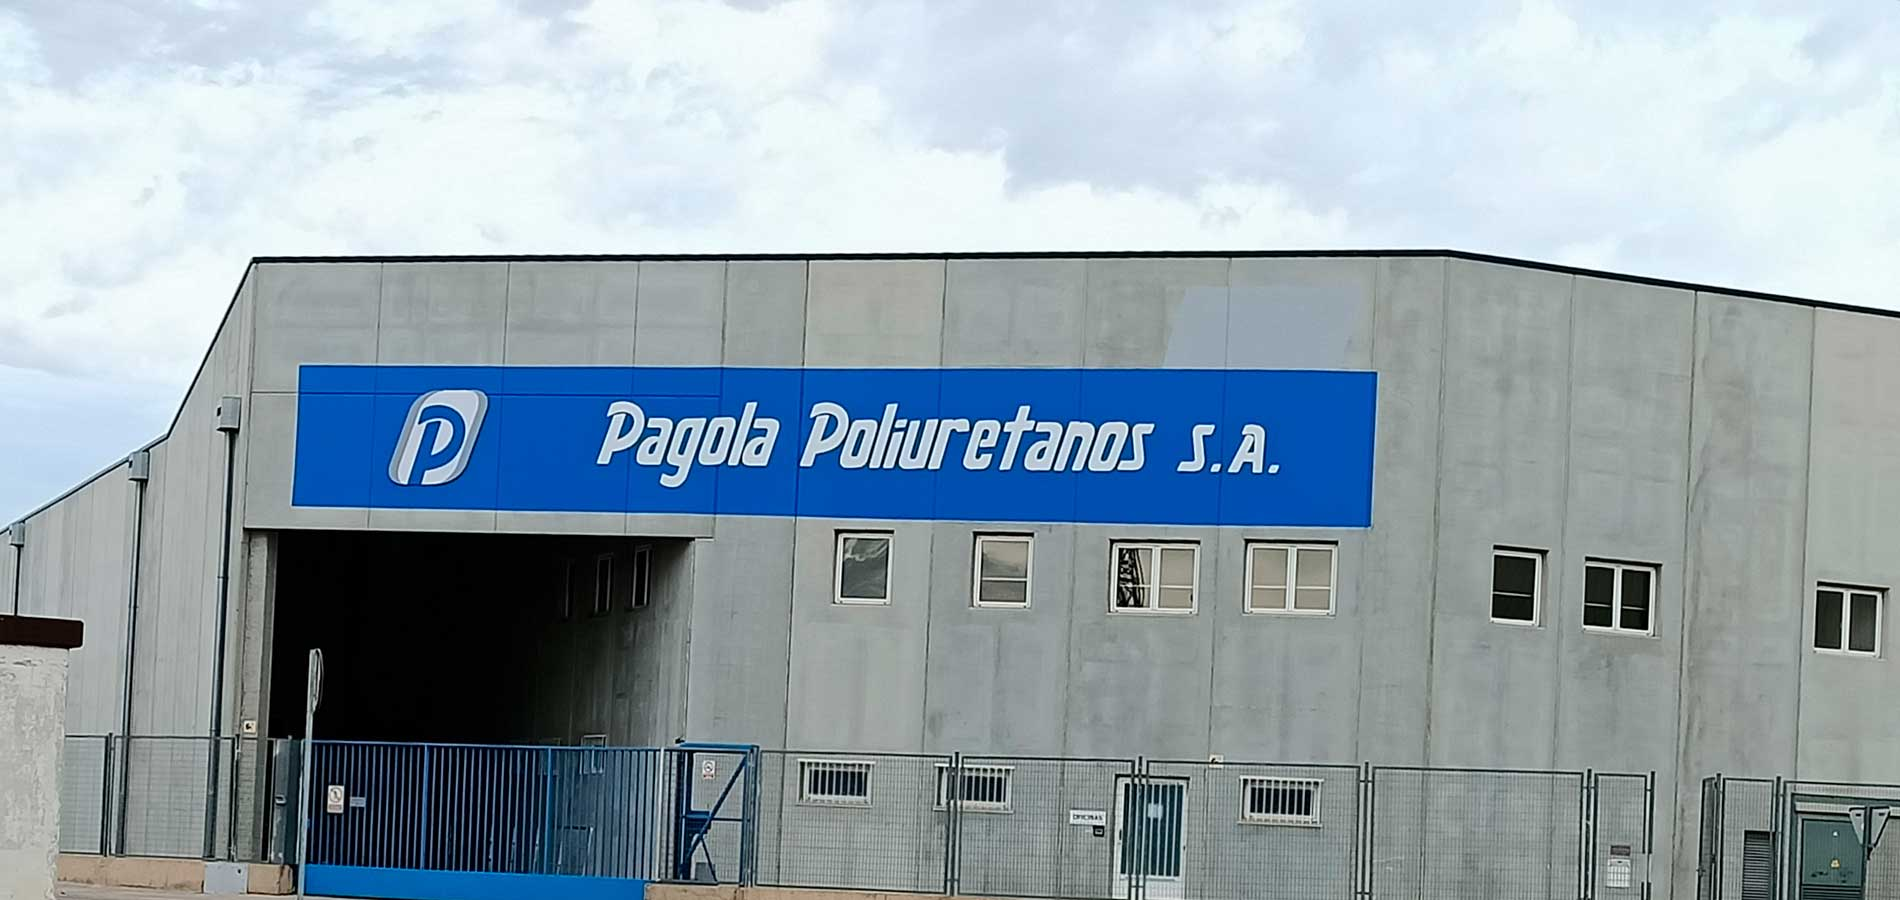 Pagola Poliuretanos, Polyurethane technical products for industrial use